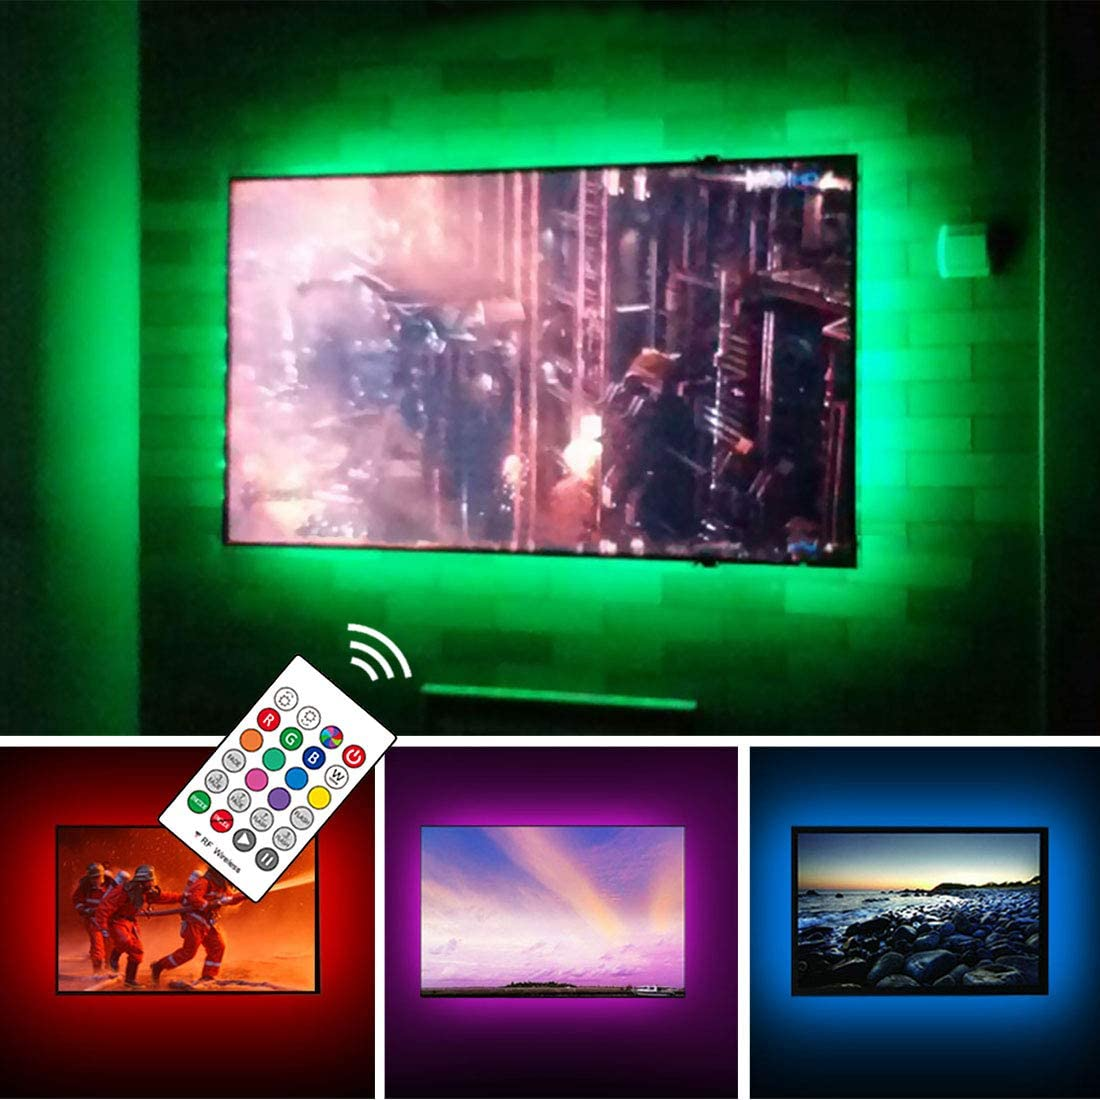 Amazon Com Tv Led Backlights Usb Led Strip Lighting For 60 65 Inches Behind Tv Monitor Sony Lg Samsung Hdtv Game Room Home Movie Theater Decor Lights Color Changing Rf Remote Cover 4